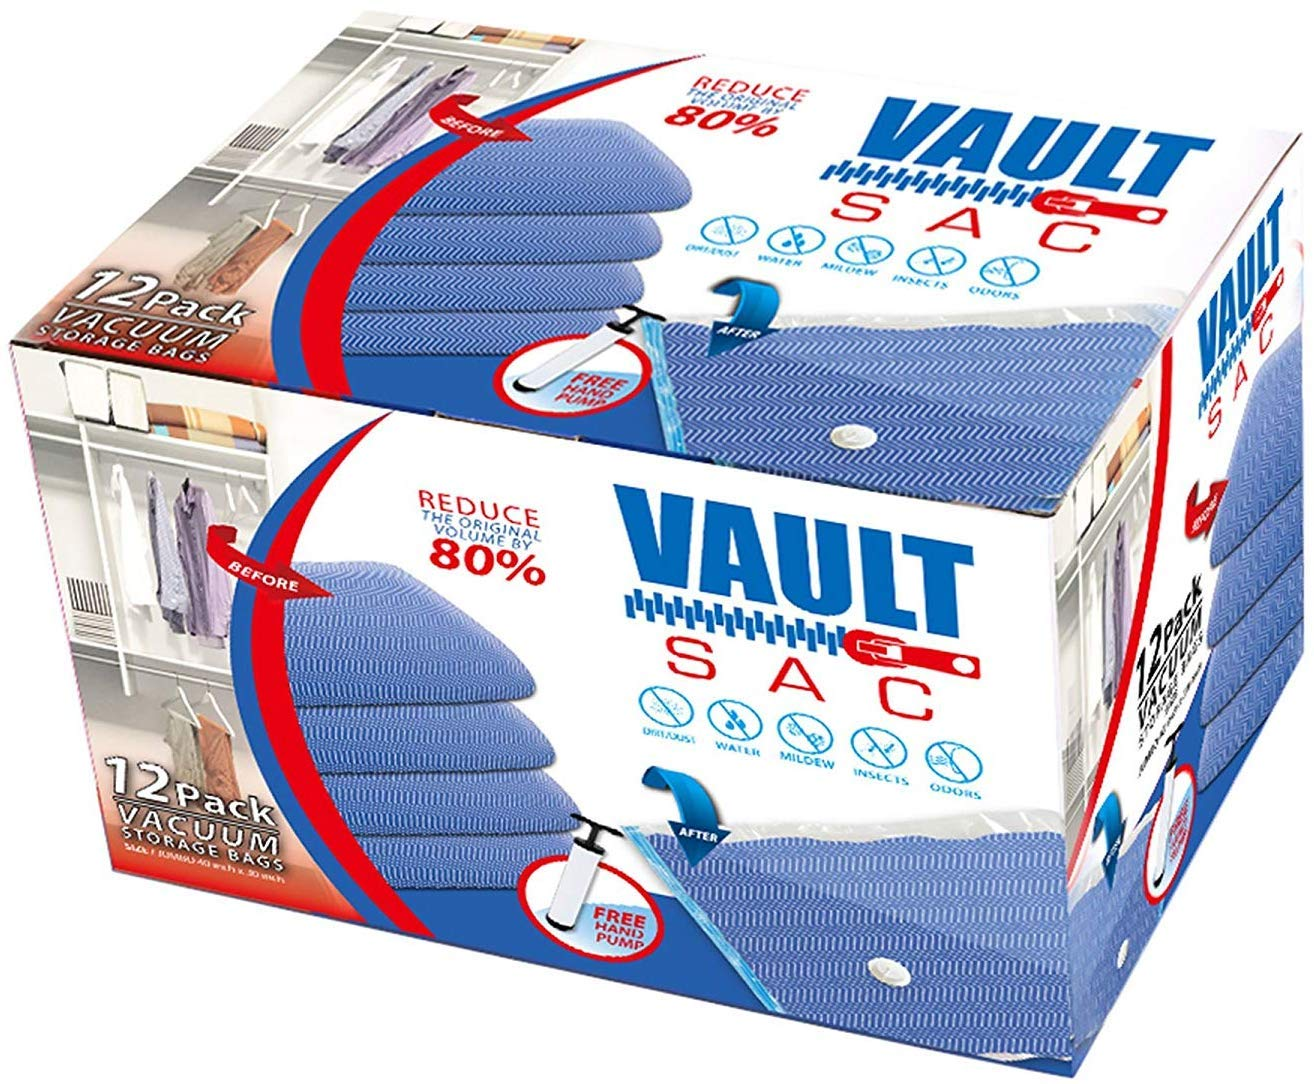 Vacuum Storage Bags | 12 PACK JUMBO Size | 12 x Jumbo Size 40 Inch x 30 Inch Bags | 80% MORE STORAGE for Clothes Blankets Duvets & Much More | Works with Any Vacuum Cleaner FREE Hand-Pump For Travel